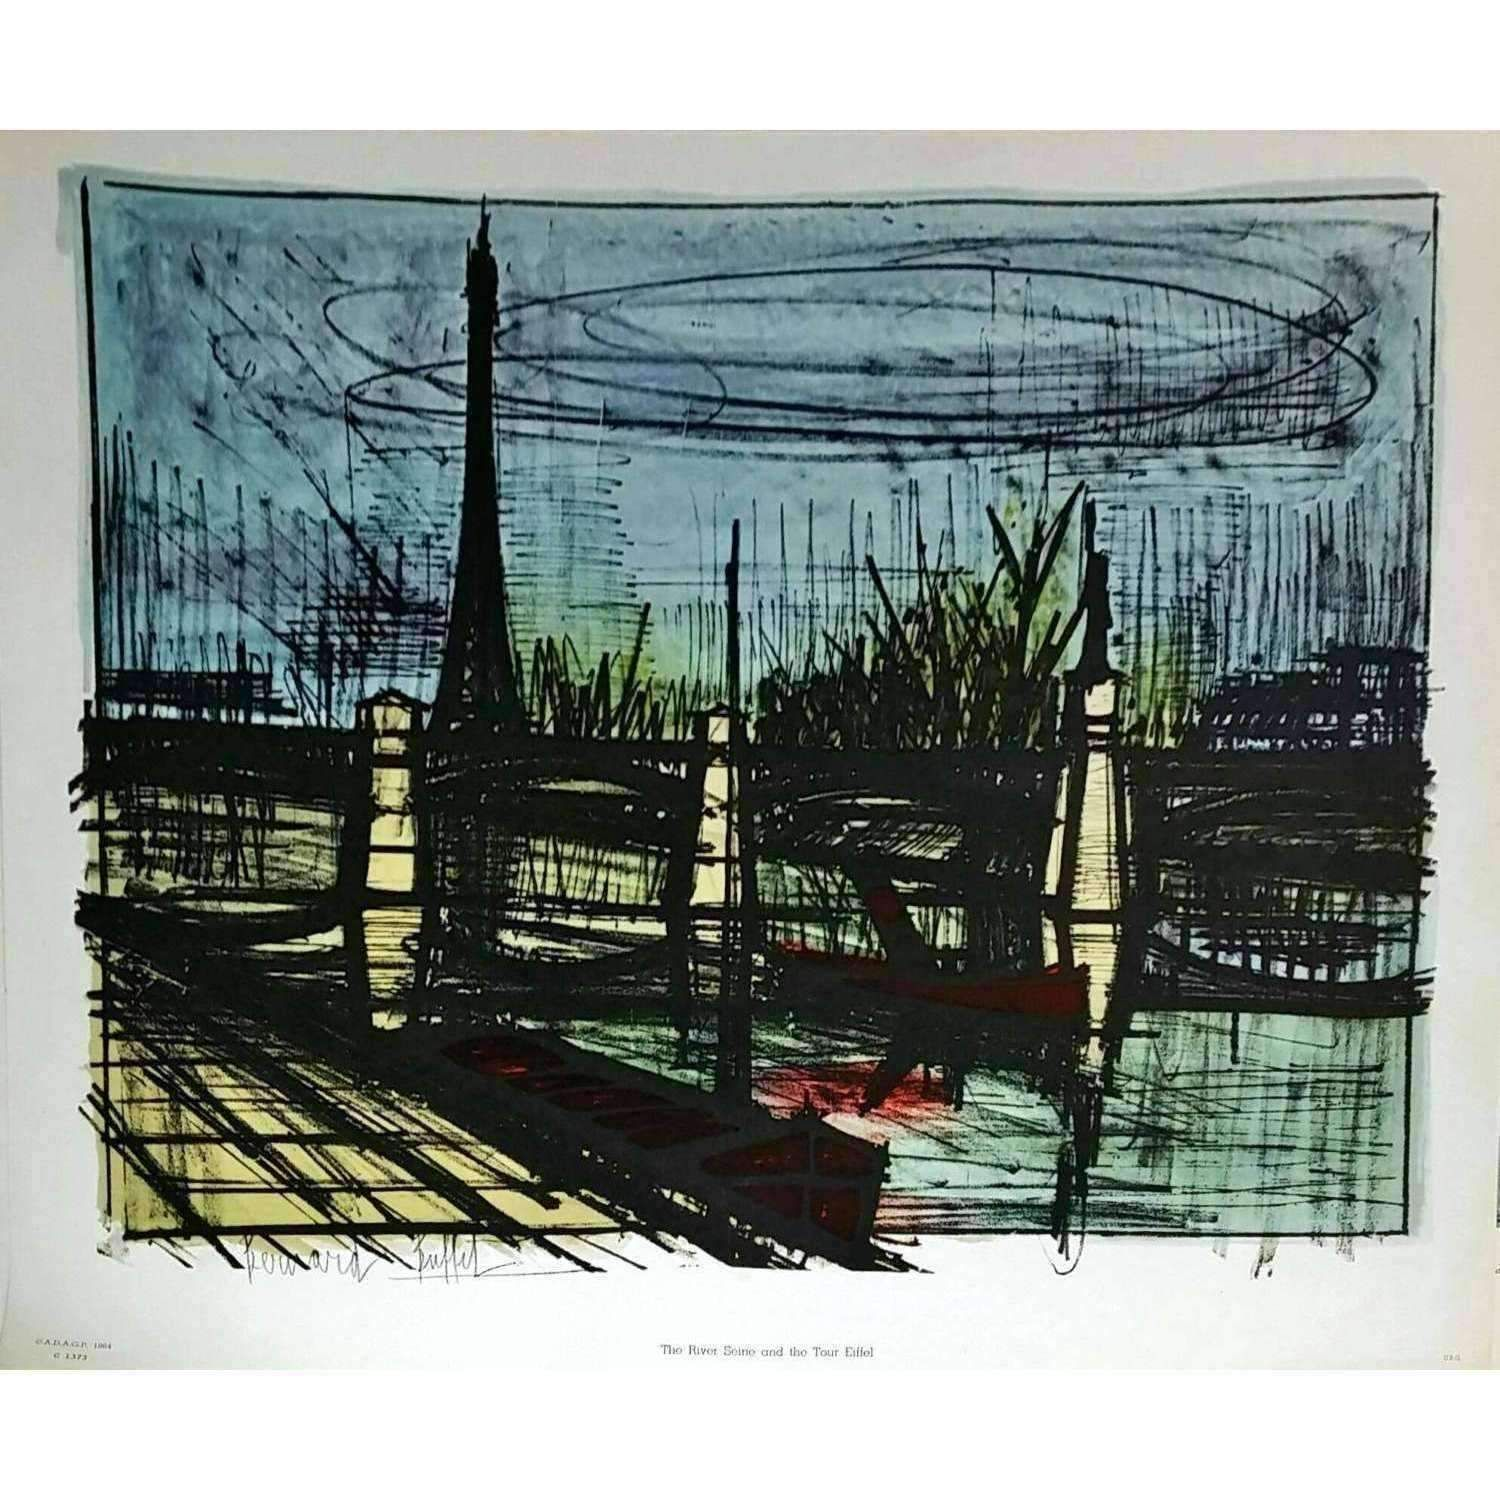 04f4d3a1286 Bernard Buffet The River Seine And The Tour Eiffel 1964 Original Lithograph